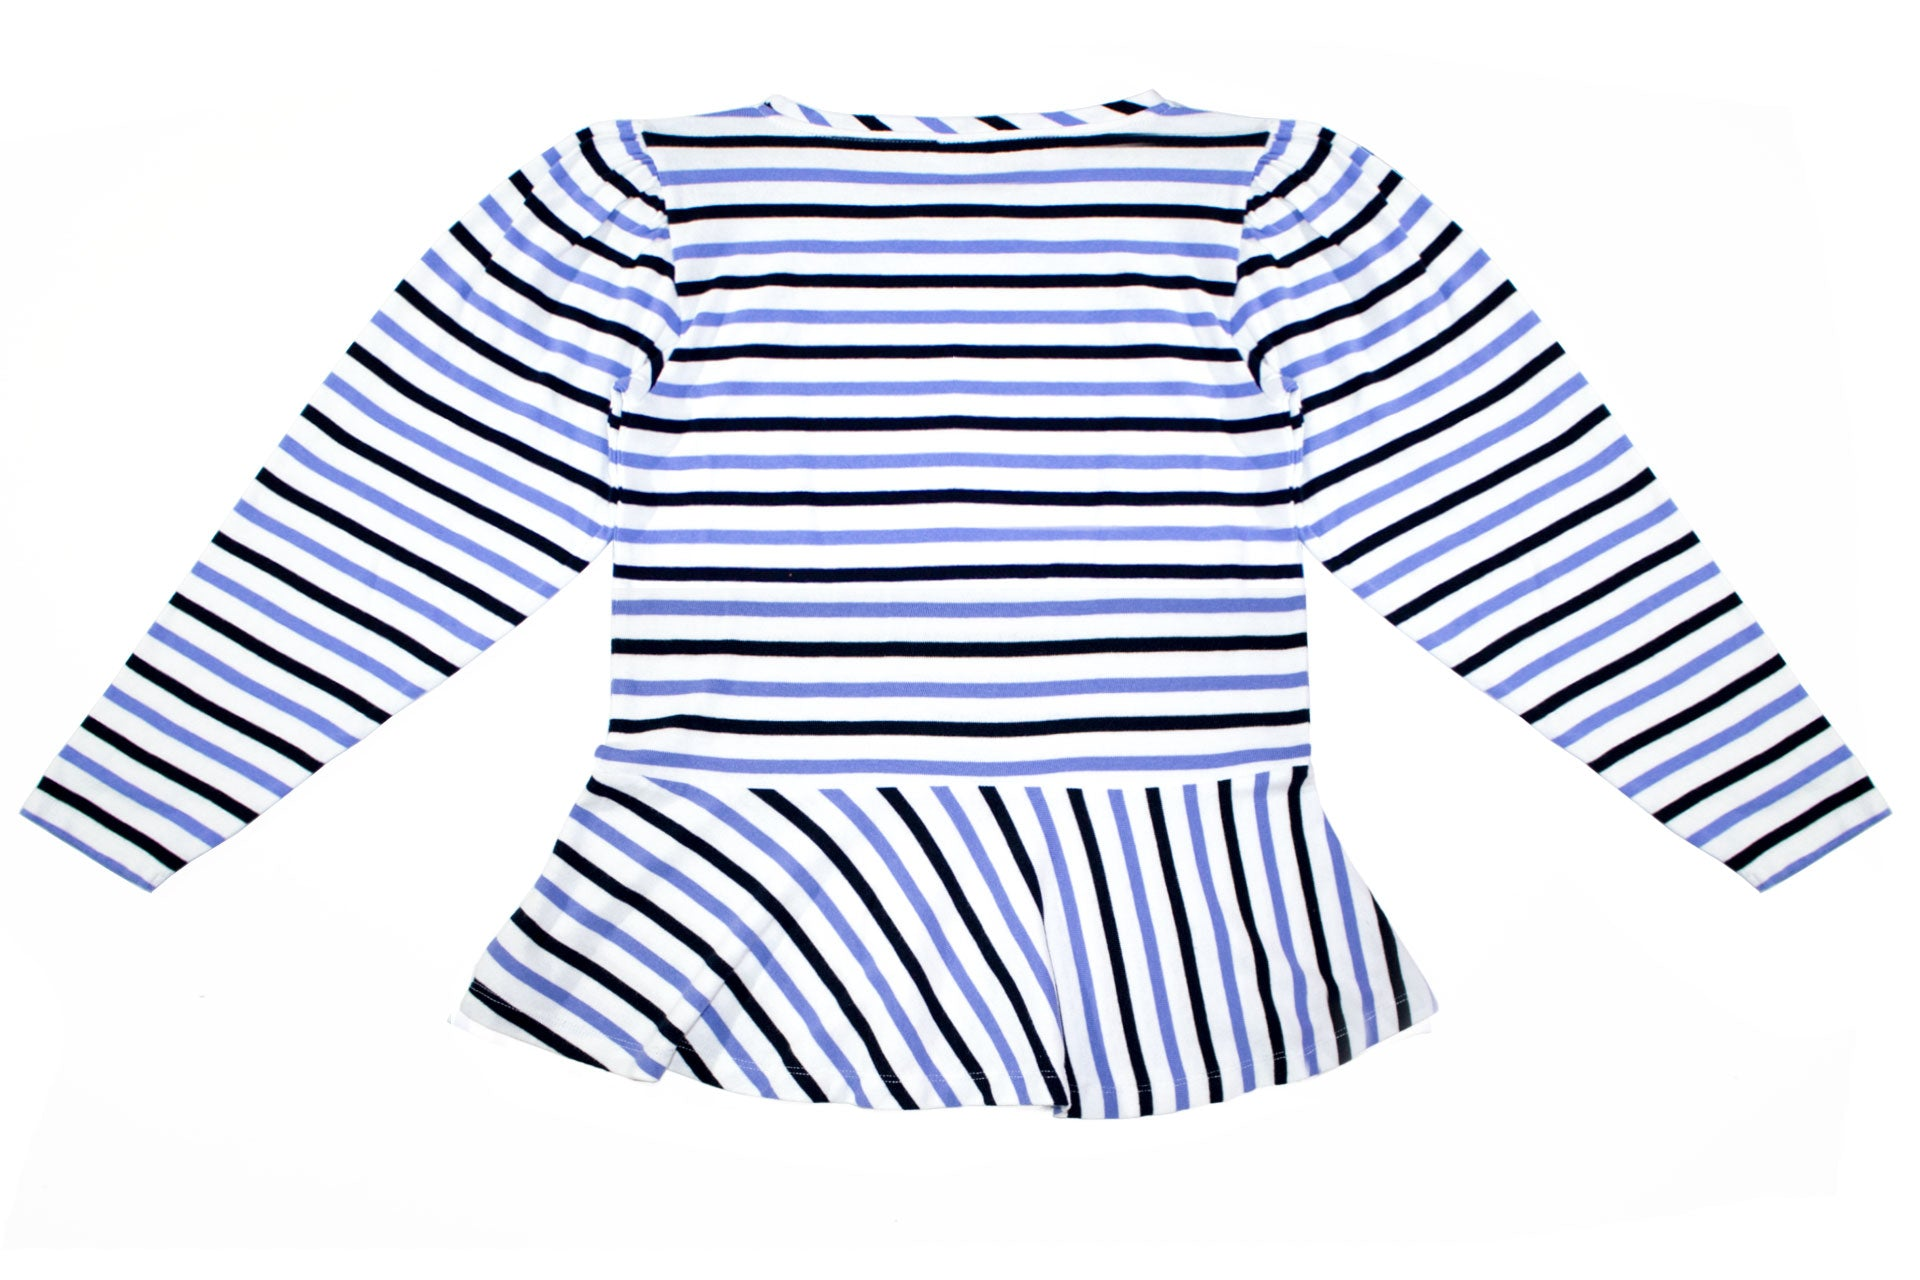 Camisola Stripes Blue&black